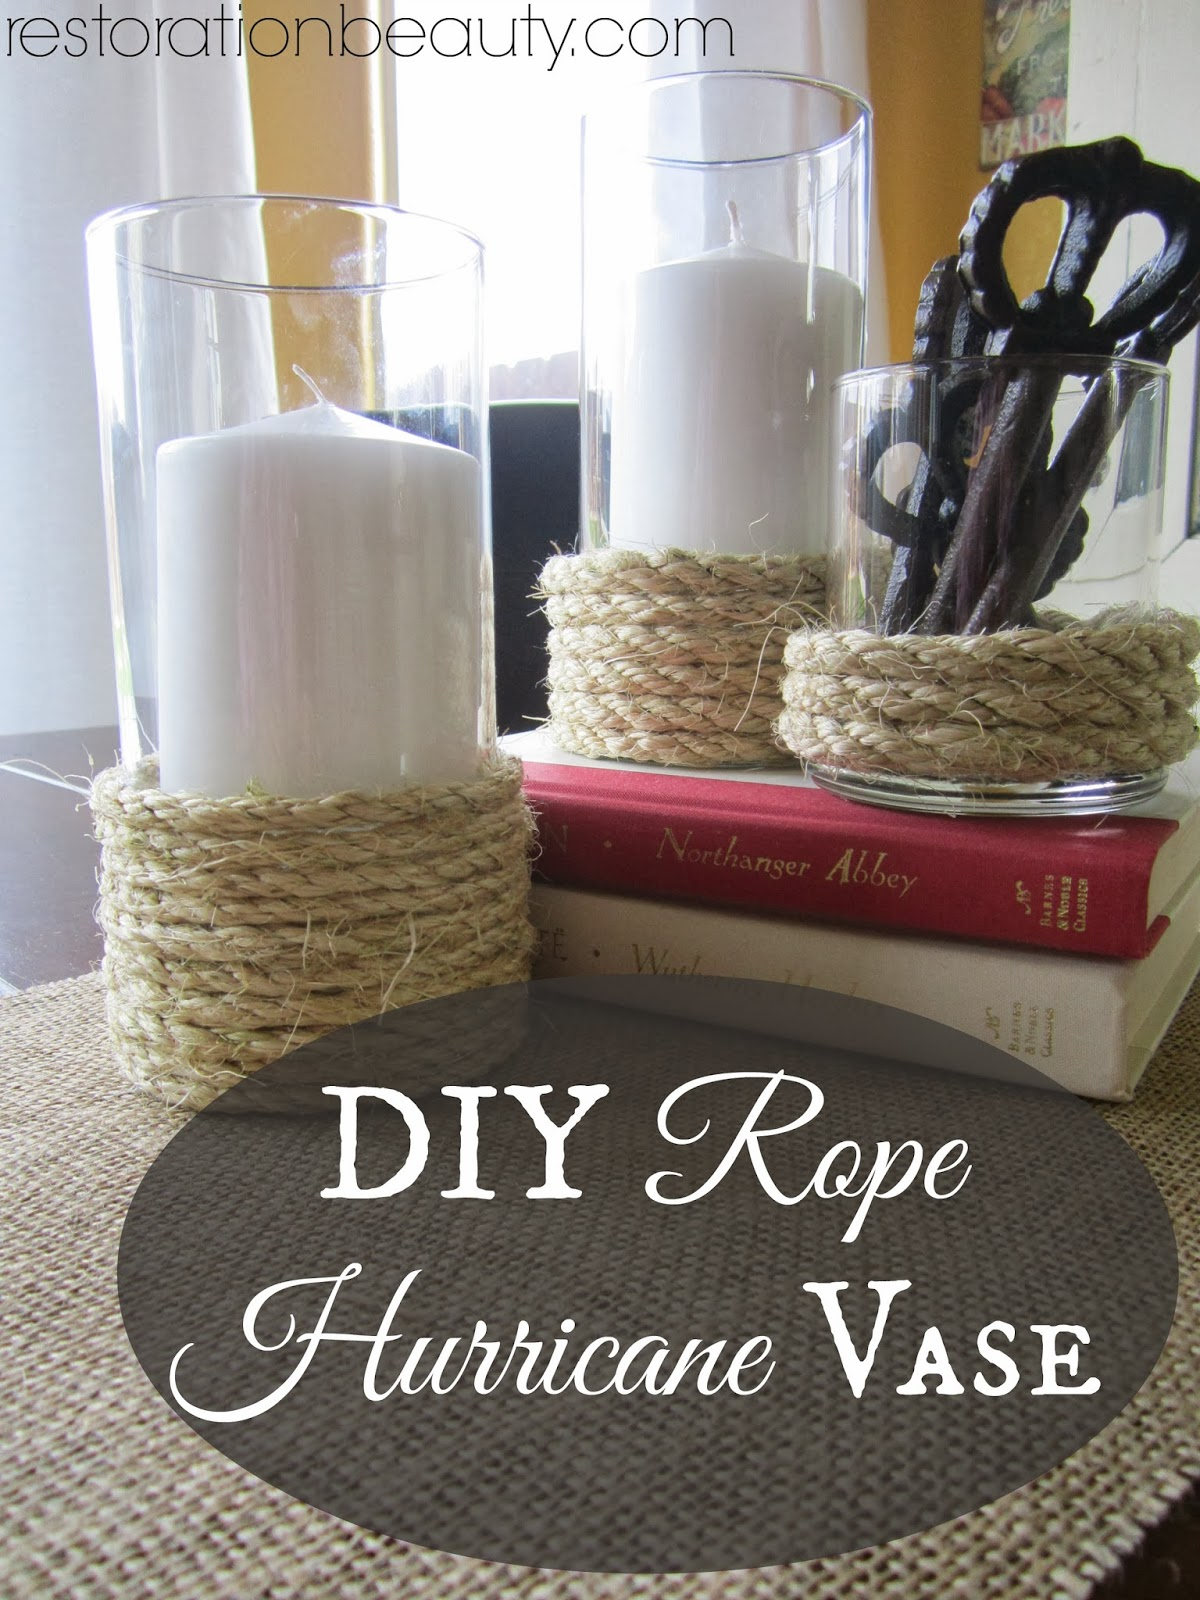 DIY Rope Hurricane Vases (Candle Holders) Ideas